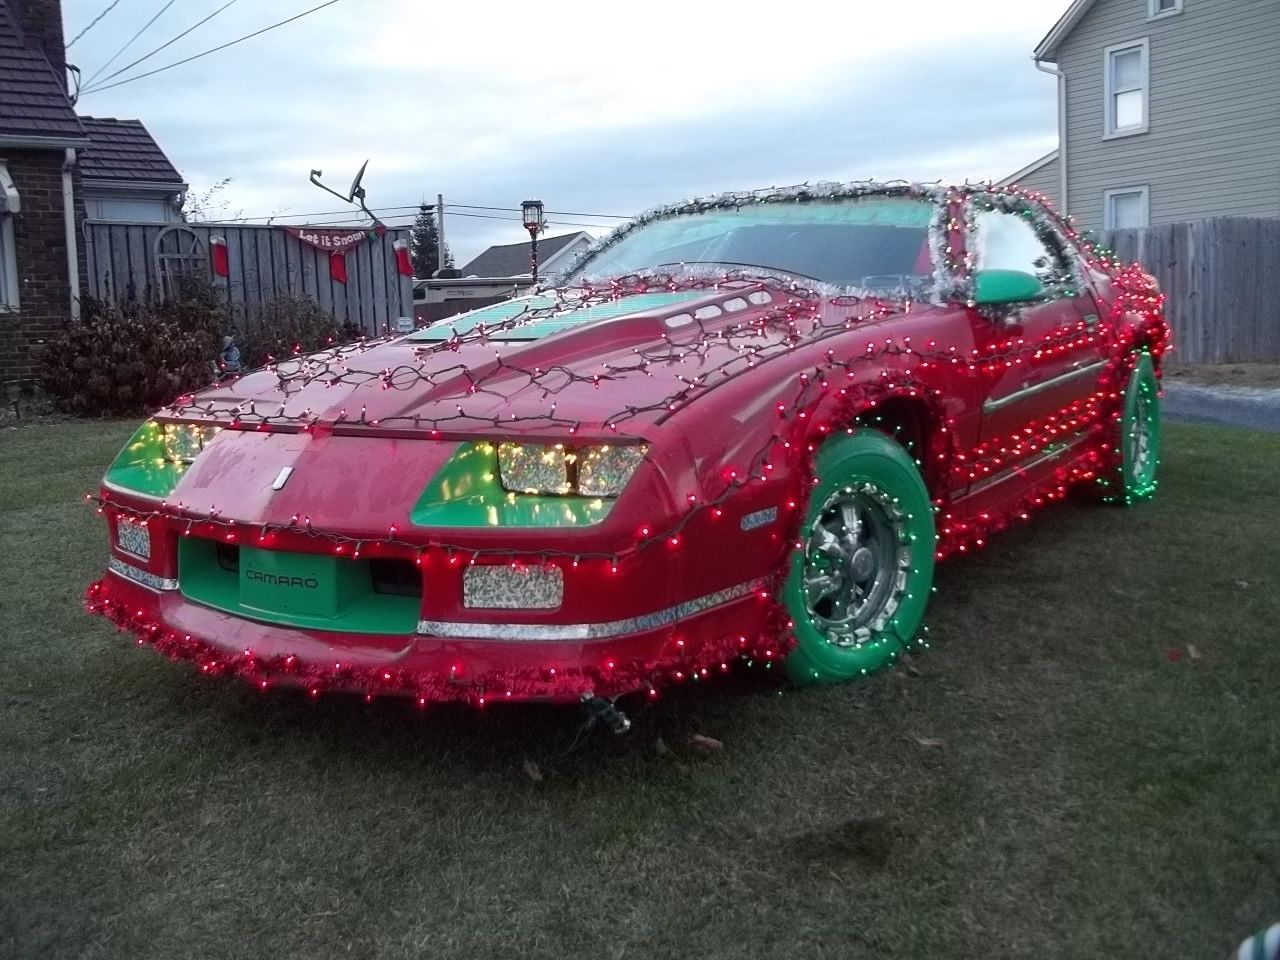 This festive Camaro is the ultimate ugly Christmas sweater turned car thumbnail